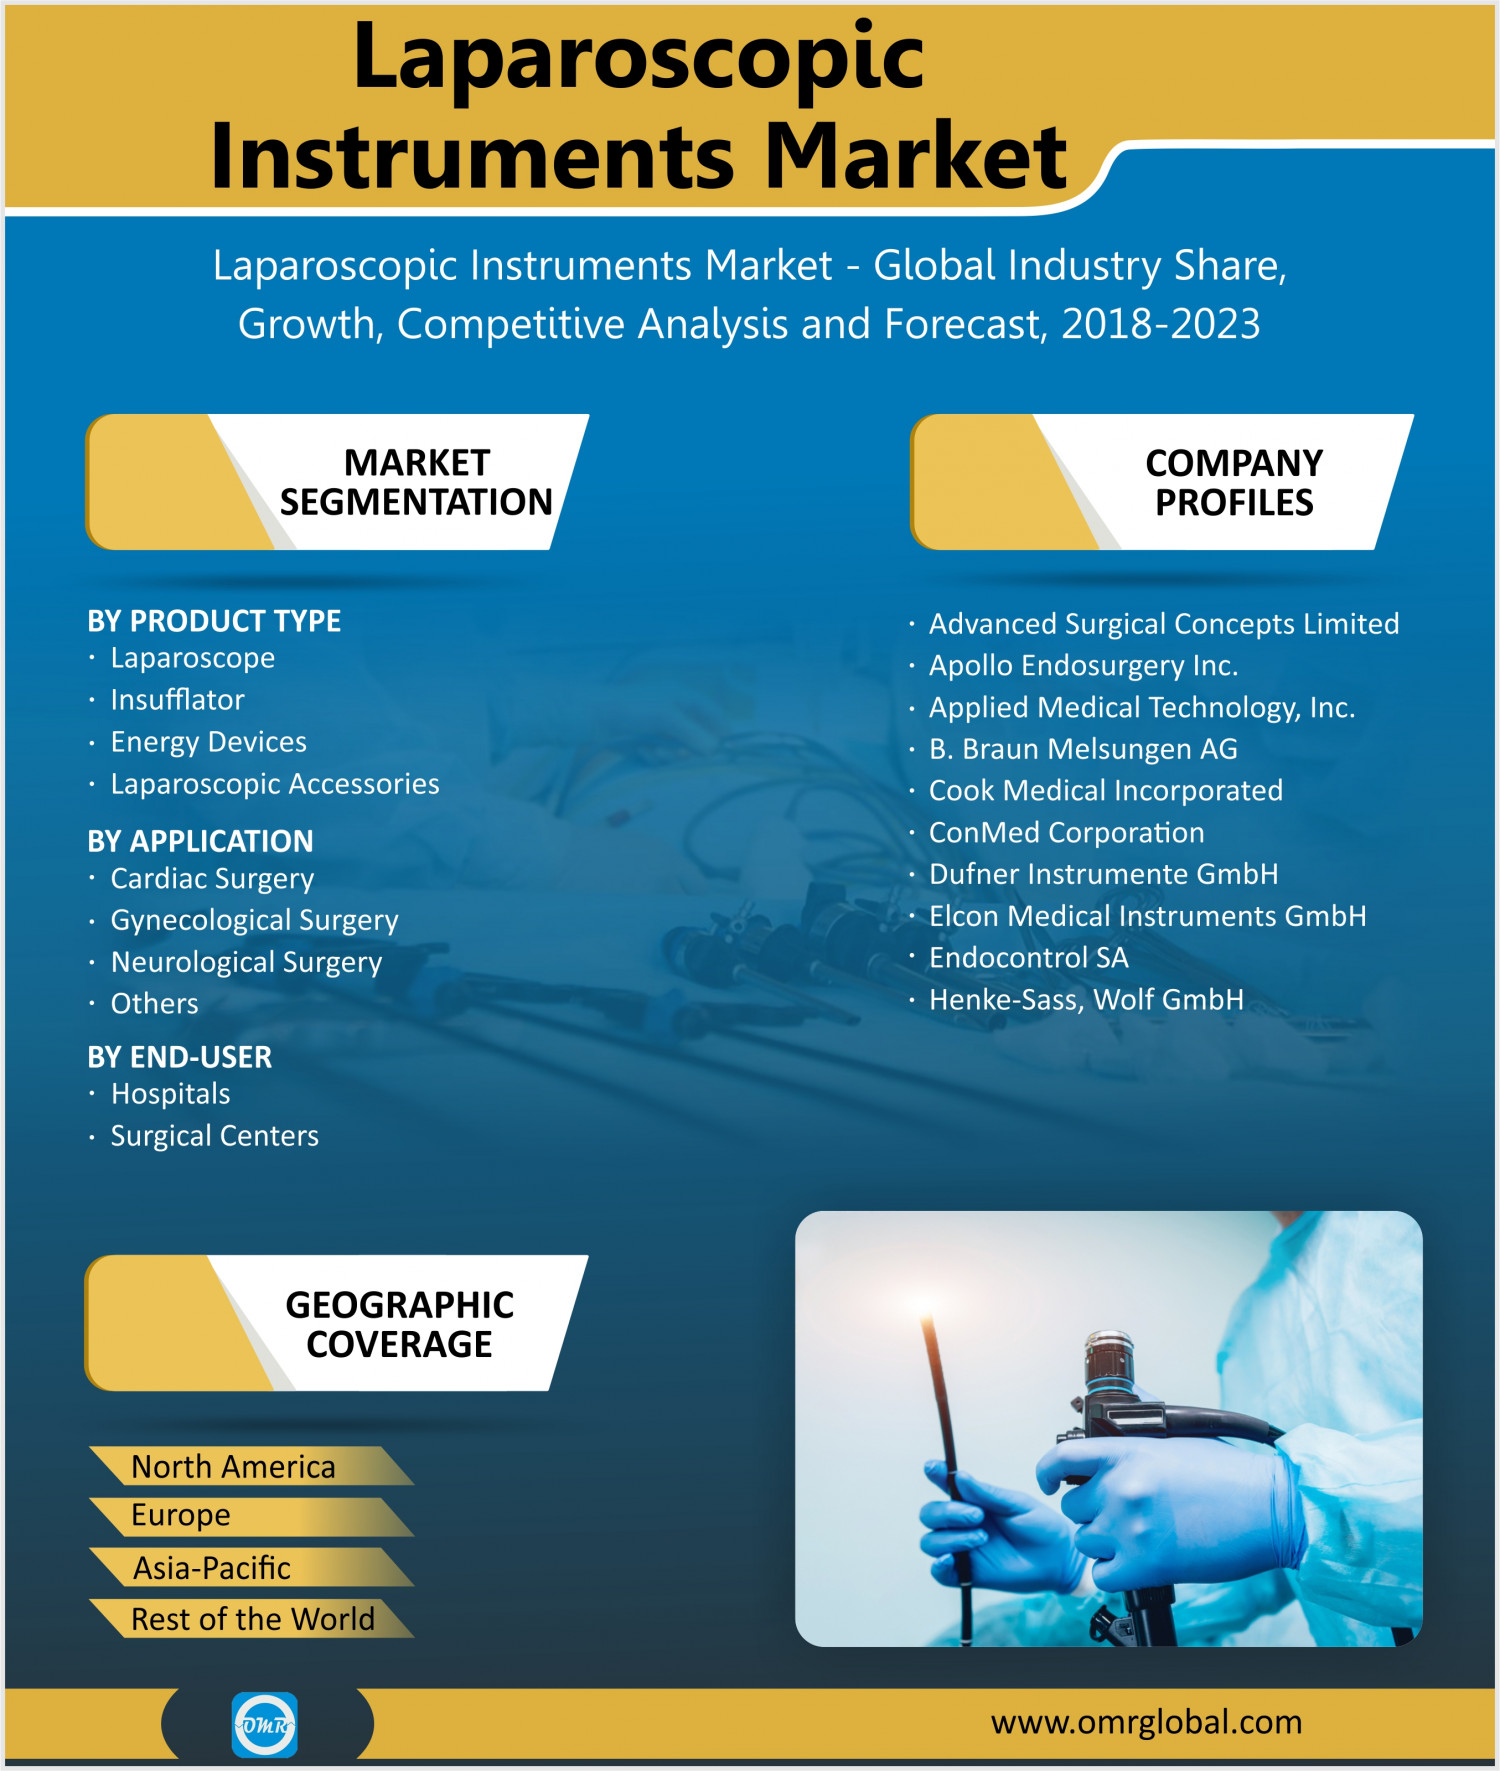 Laparoscopic Instruments Market Share, Trends, Size, Research and Forecast 2018-2023 Infographic